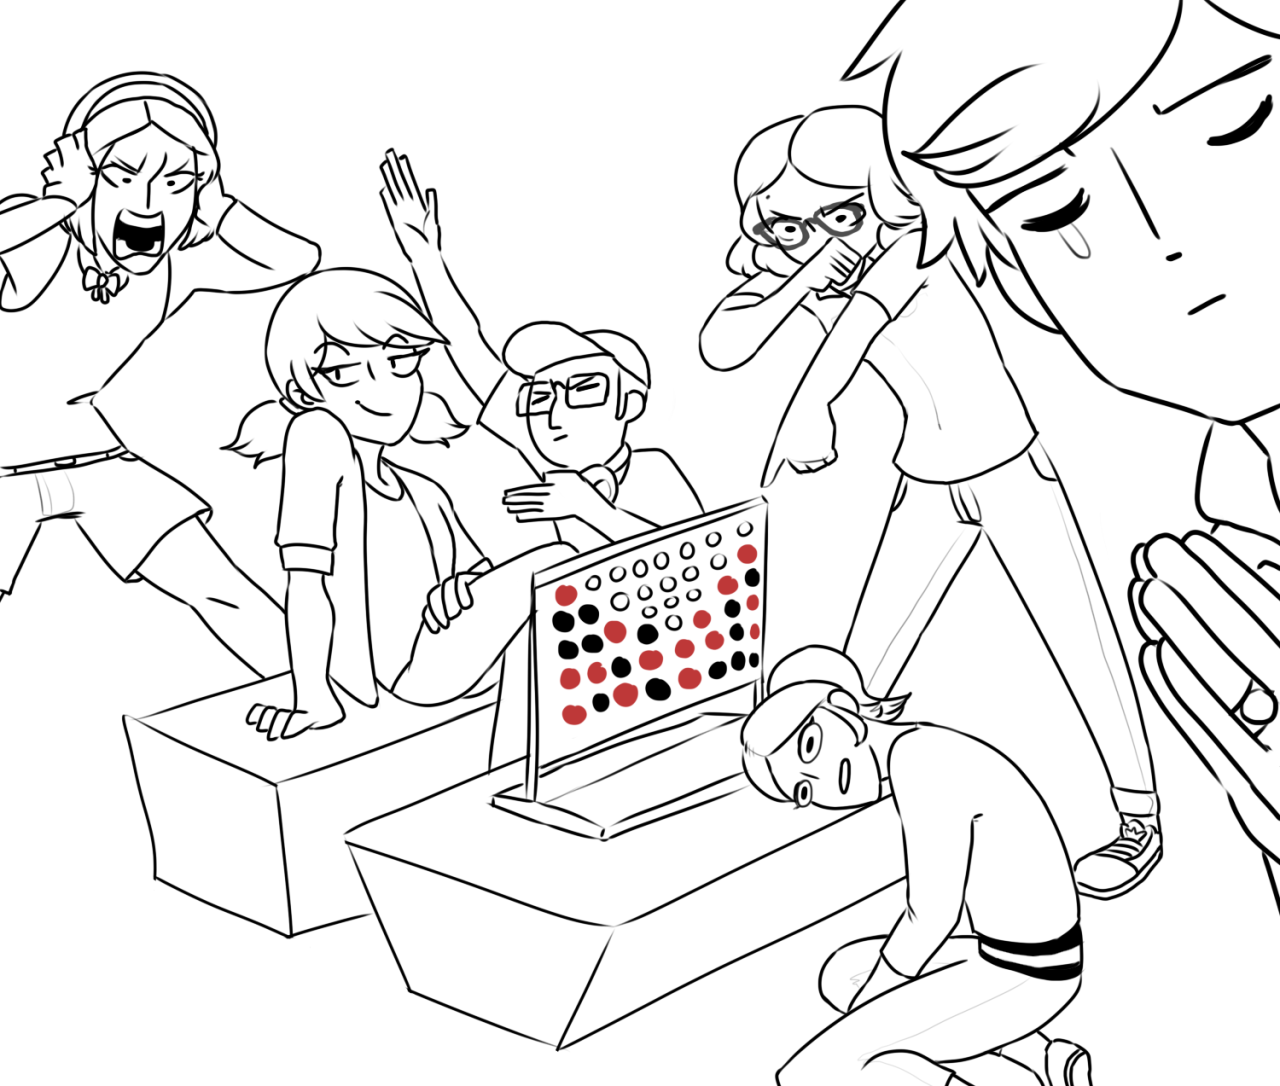 1280x1086 Miraculous Ladybug News U2014 Tinysport So I Did The Draw The Squad  Meme